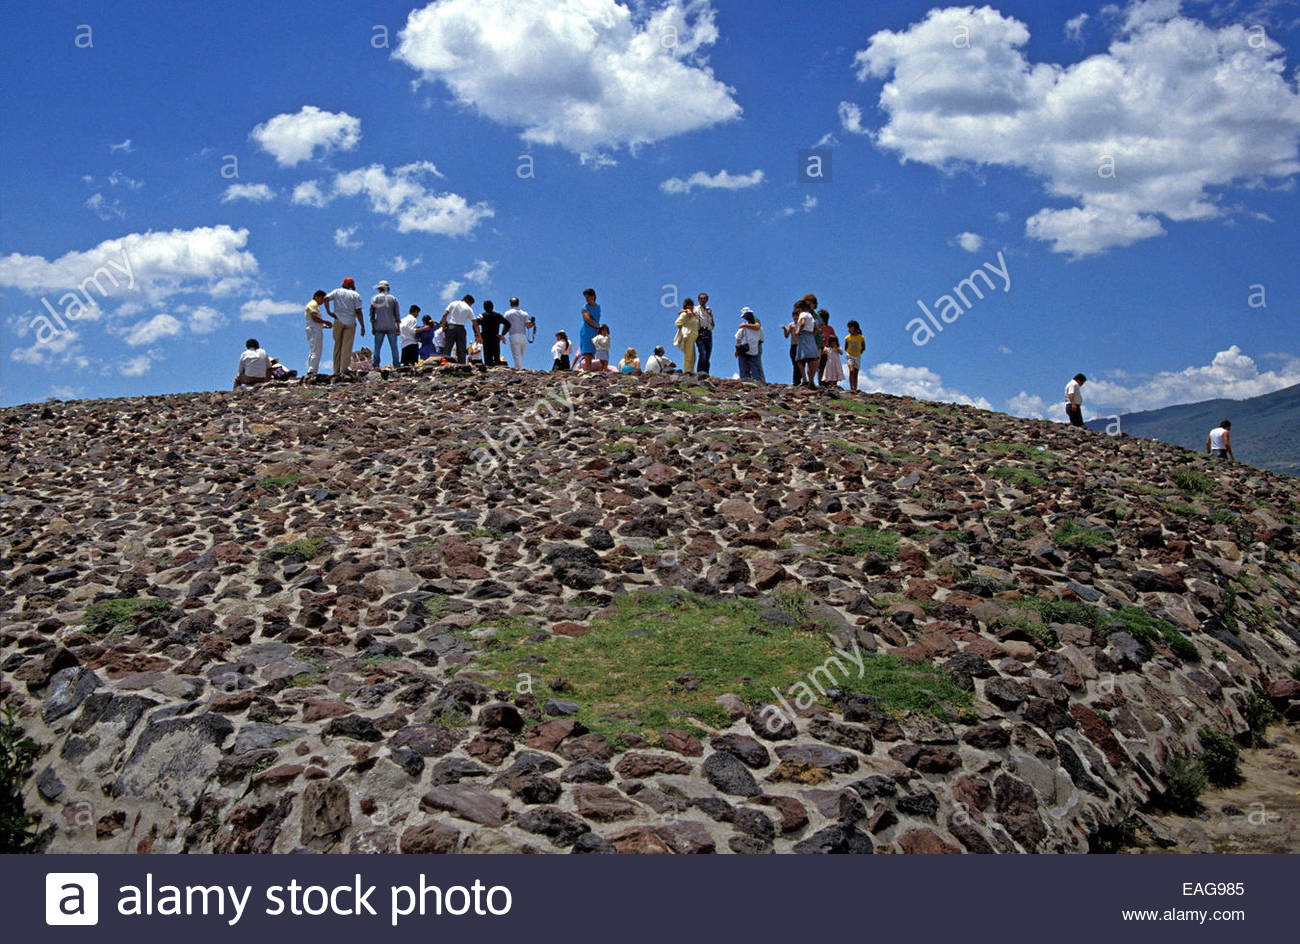 Mexico, archeological site of Teotihuacan, the top of the Pyramid of the Sun - Stock Image